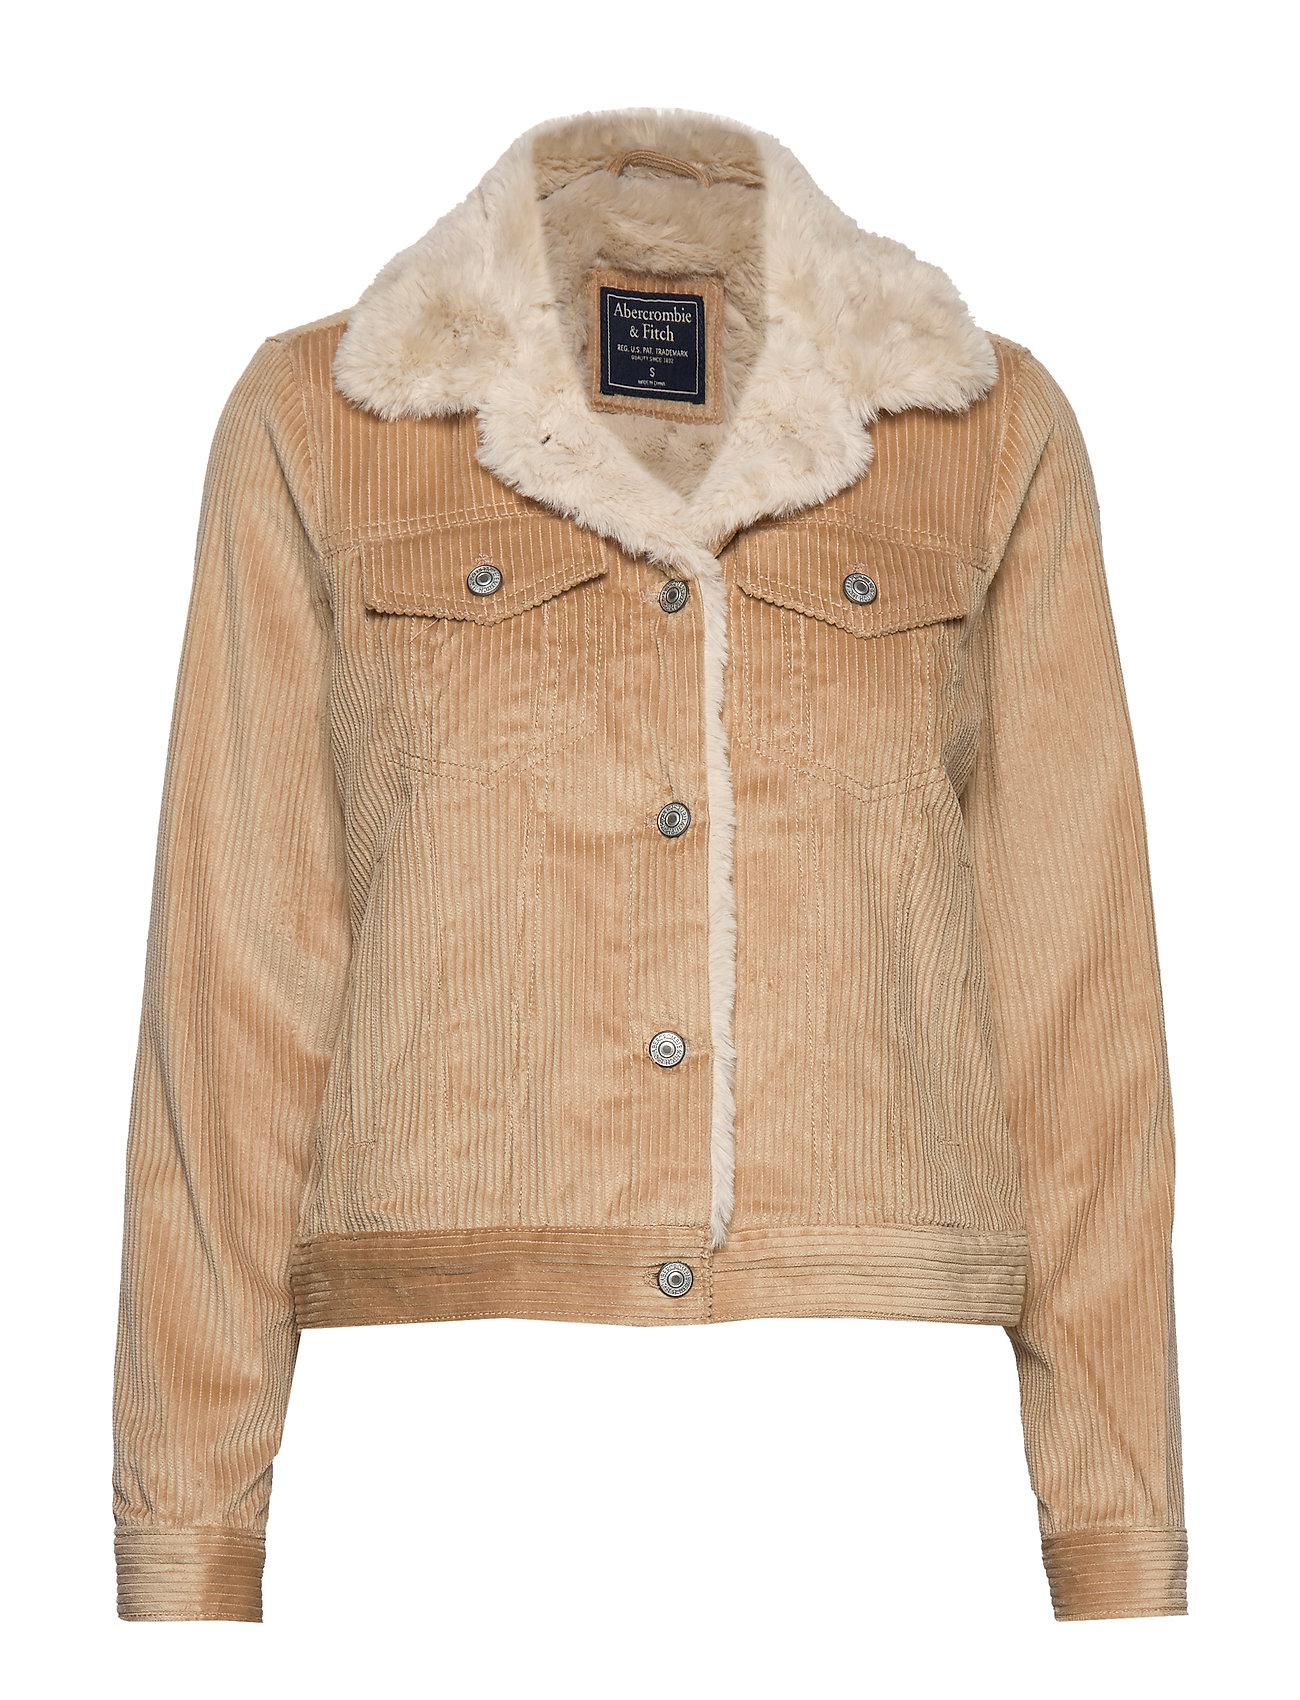 Abercrombie & Fitch Corduroy Trucker with Sherpa Collar - LIGHT BROWN DD